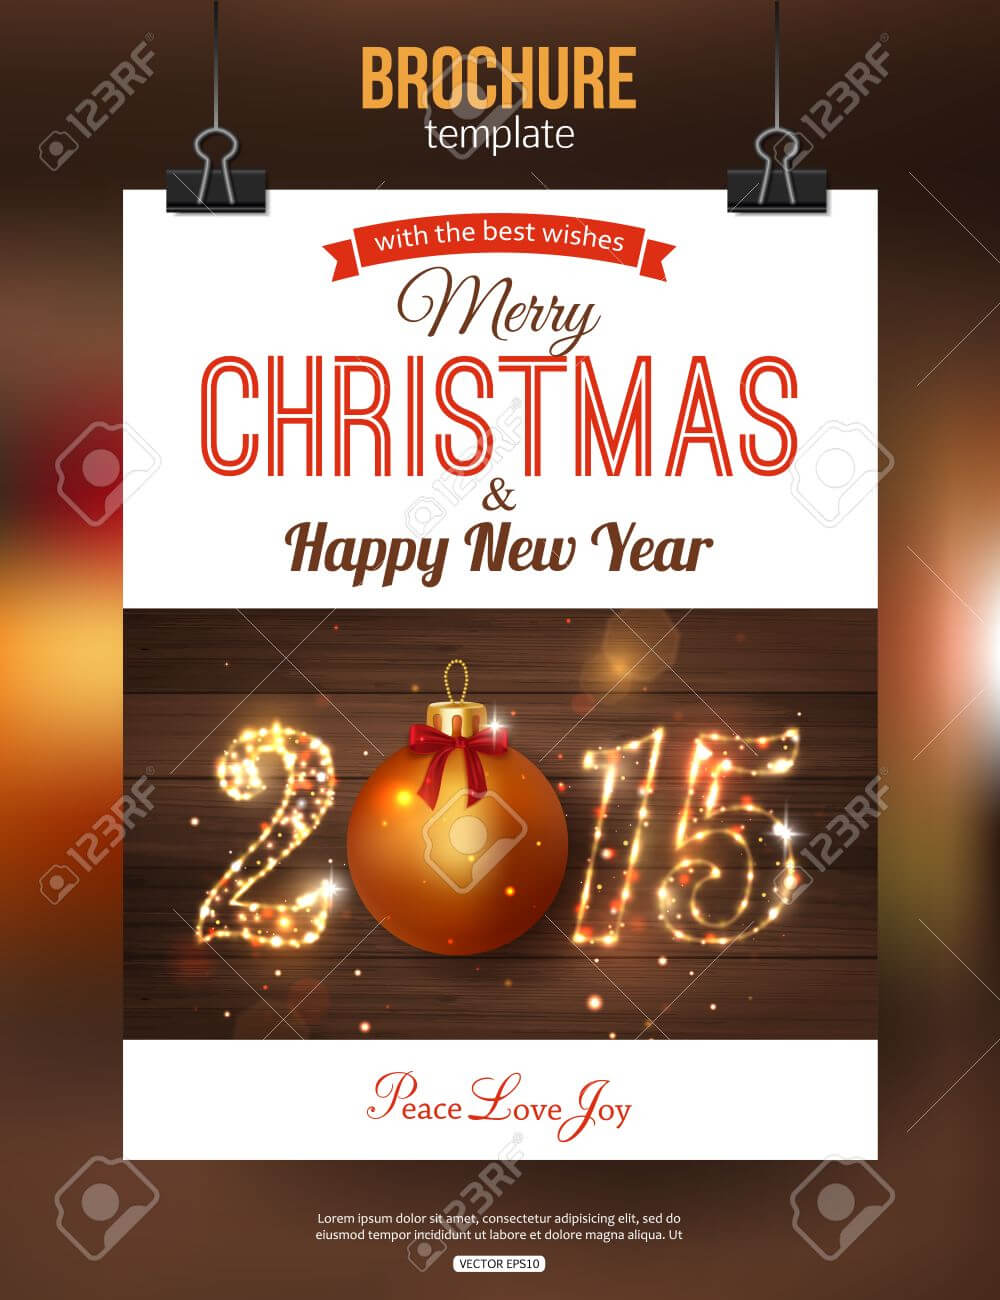 Christmas Brochure Template. Abstract Typographical Flyer Design.. pertaining to Christmas Brochure Templates Free